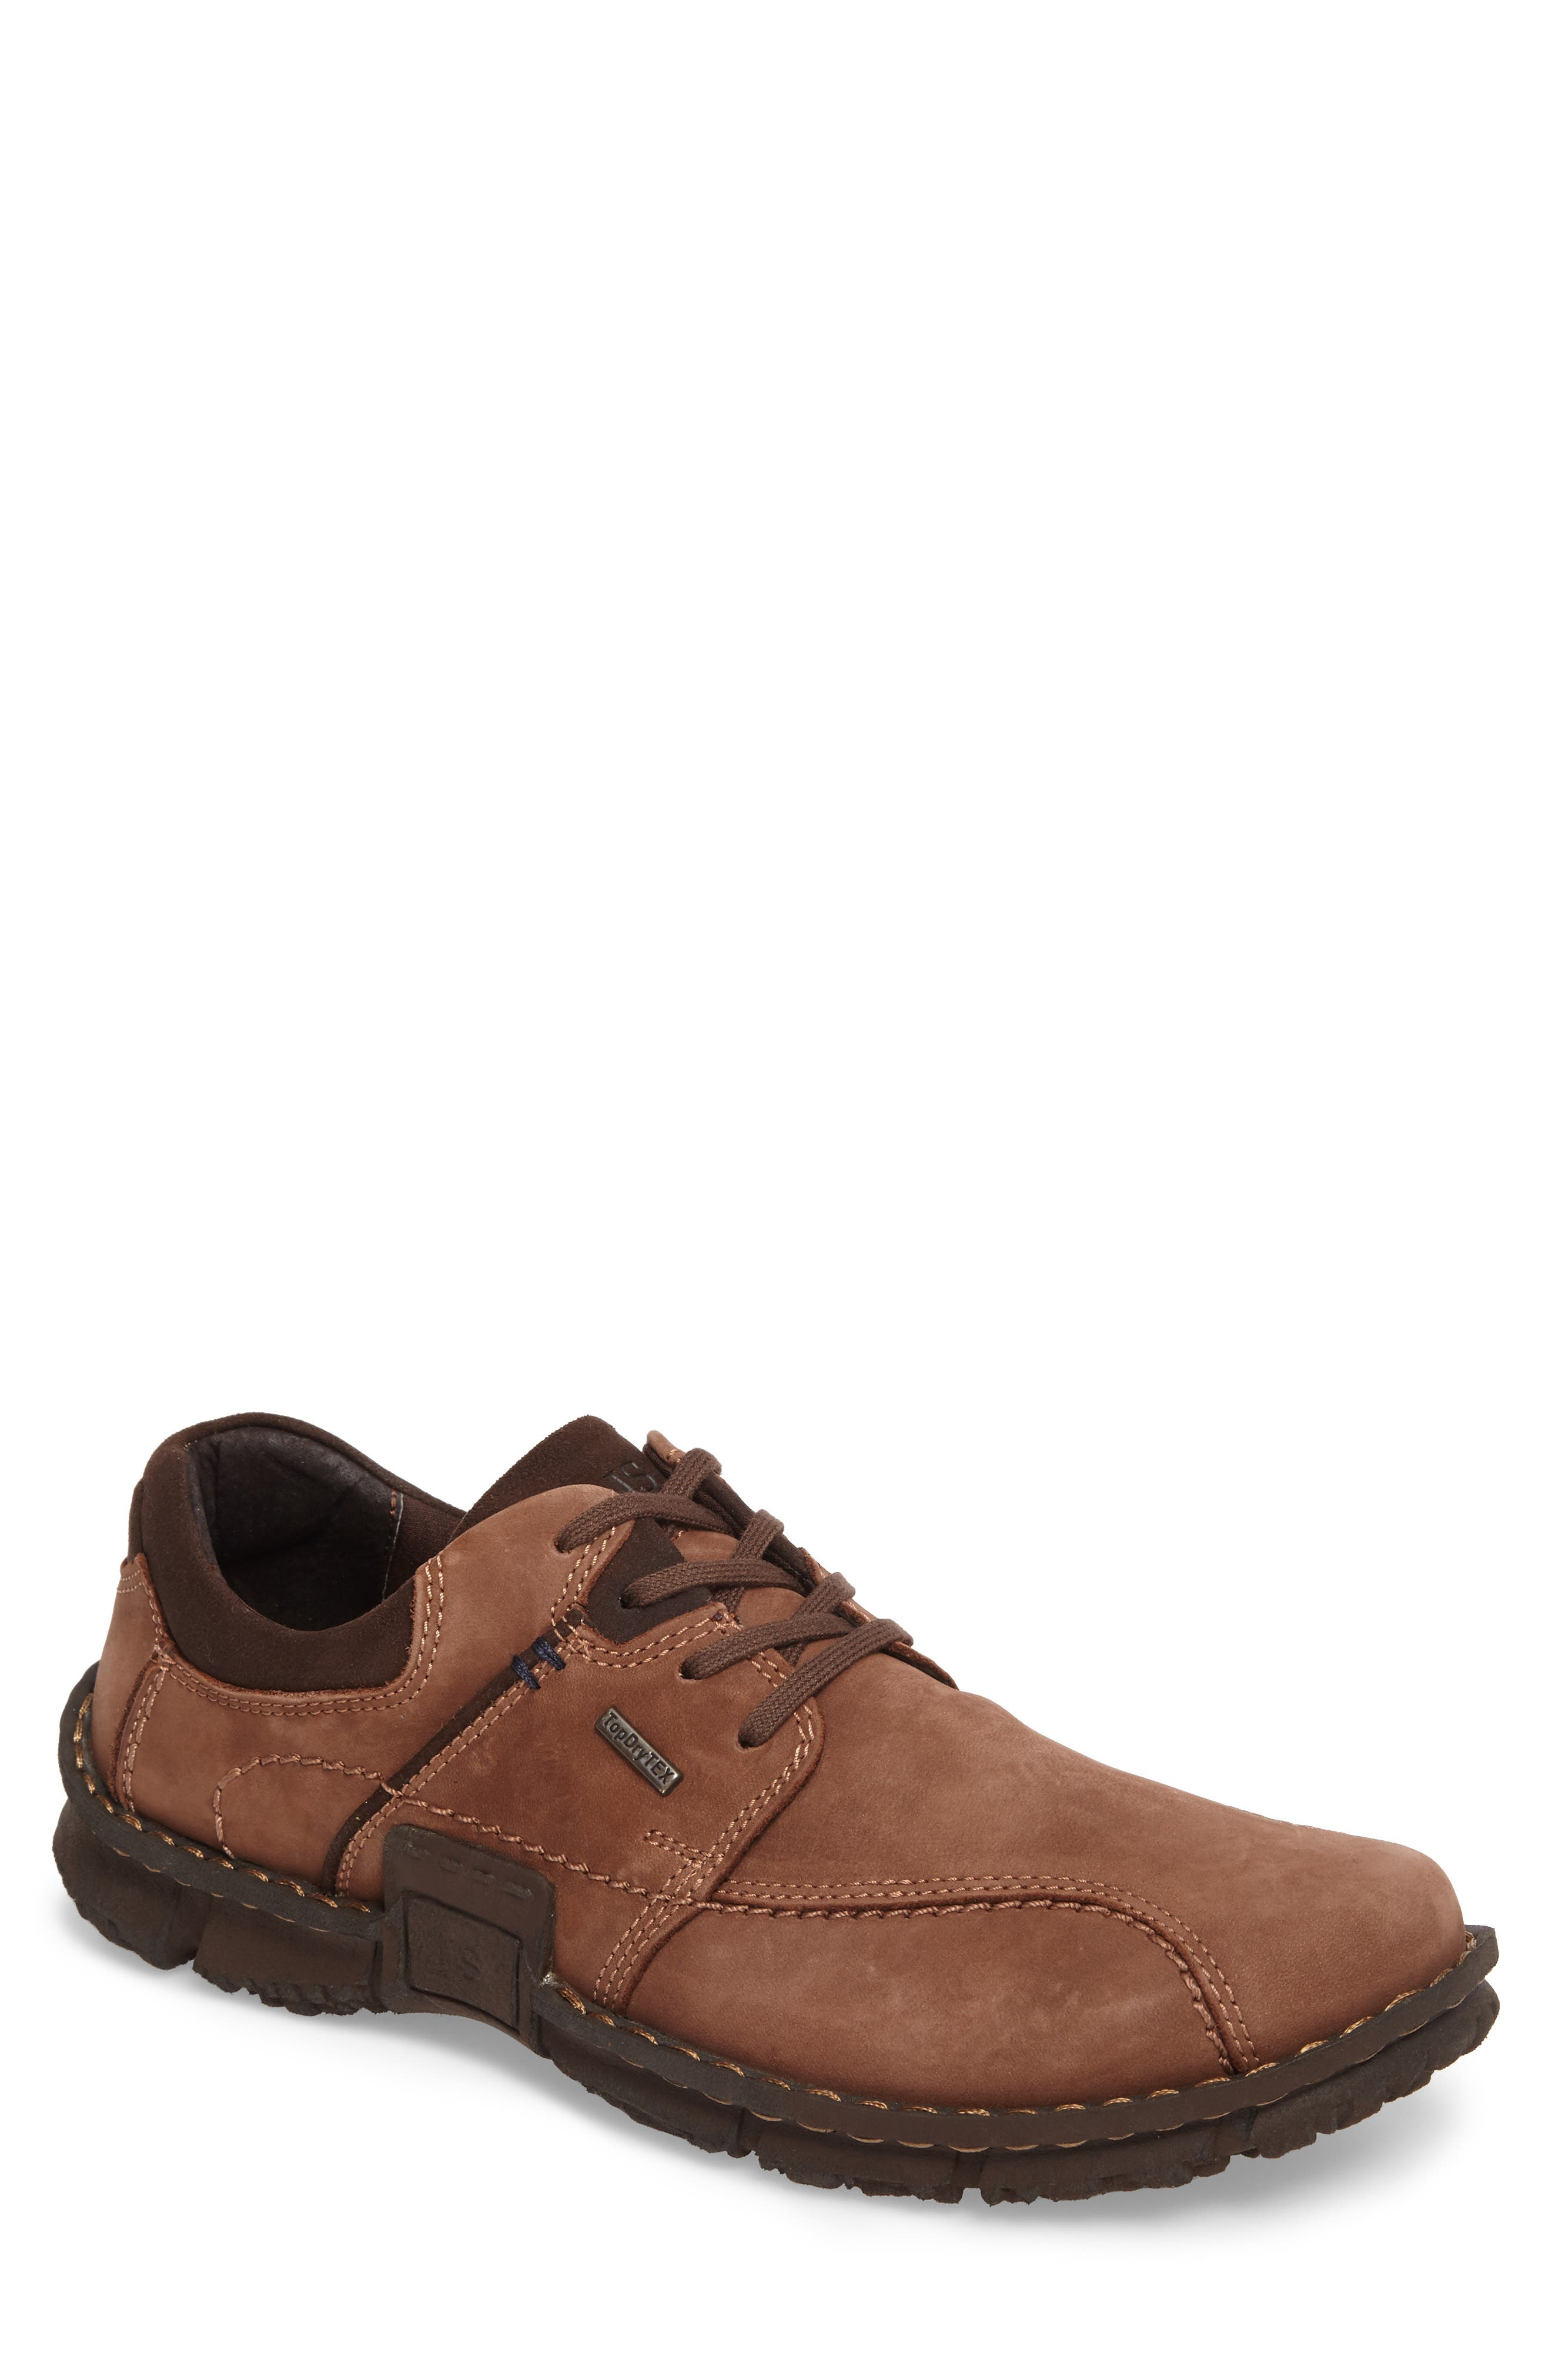 Willow Waterproof Sneaker,                             Main thumbnail 1, color,                             Castagne